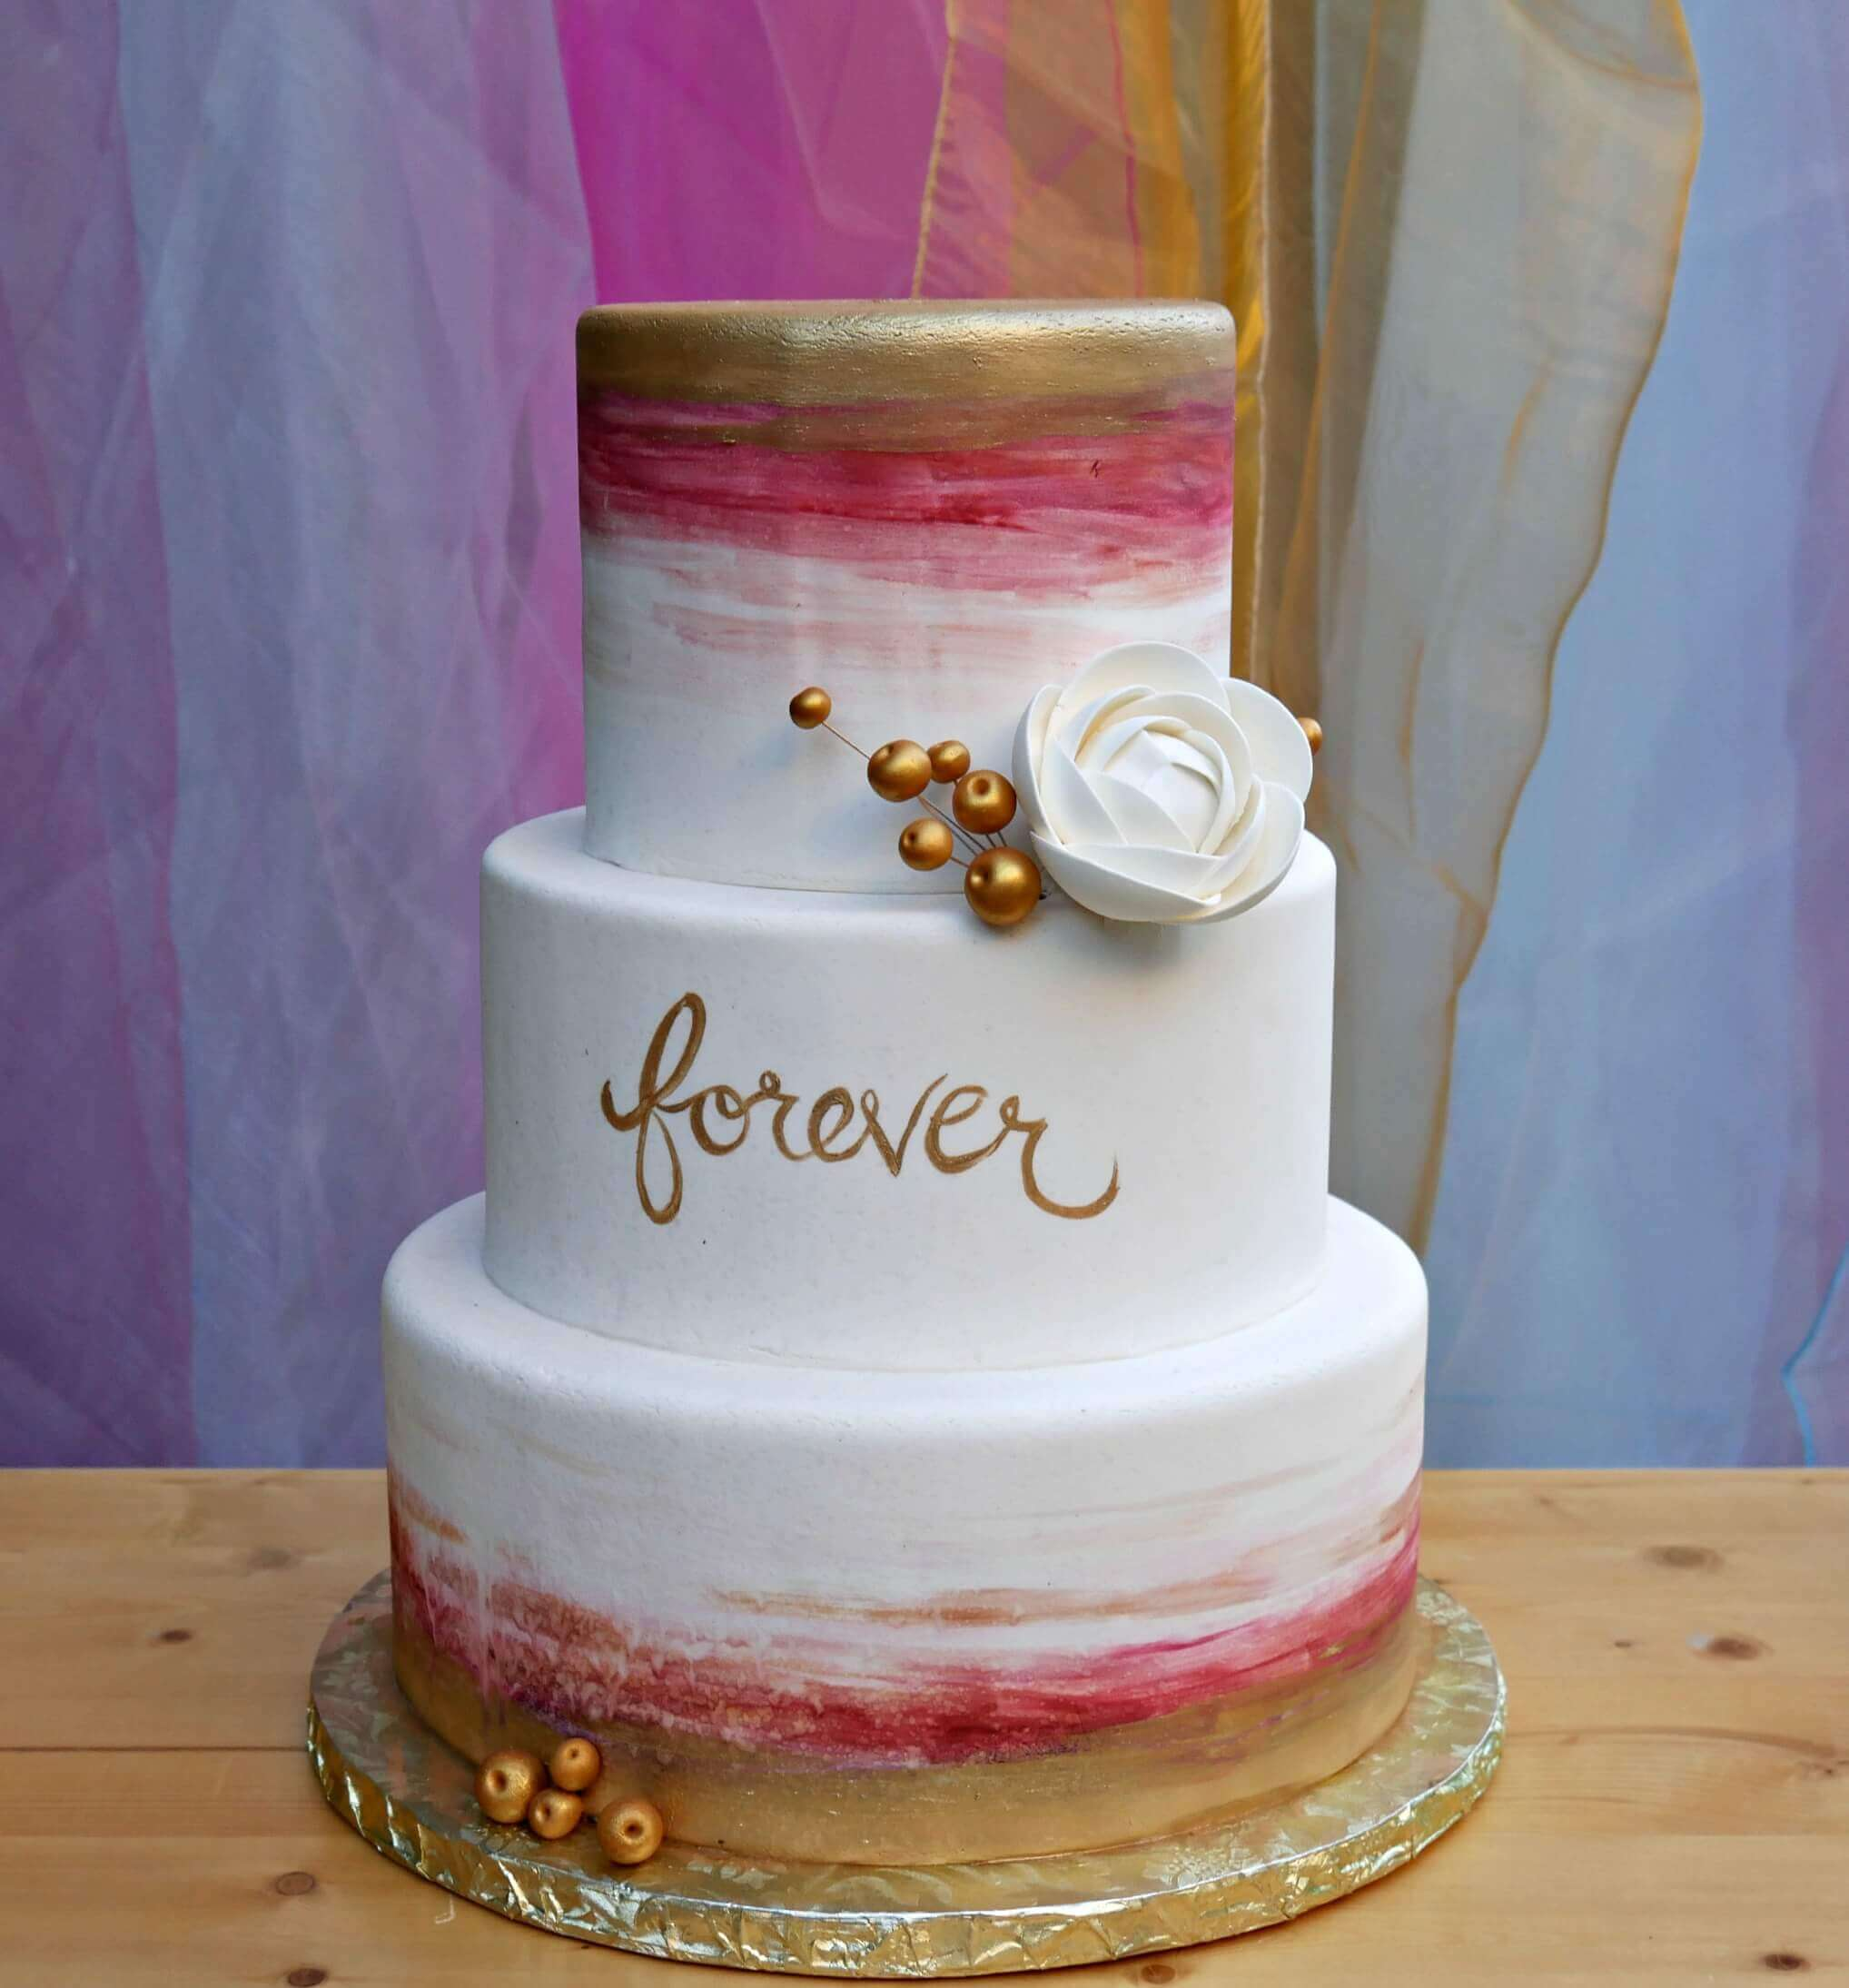 Love this Engagement Party Watercolor Cake with gold foil and sugar flower. Created by Michelle's Patisserie and styled by Mint Event Design in Austin Texas www.minteventdesign.com #caketable #weddingcake #weddingcakes #bohochic #watercolorcake